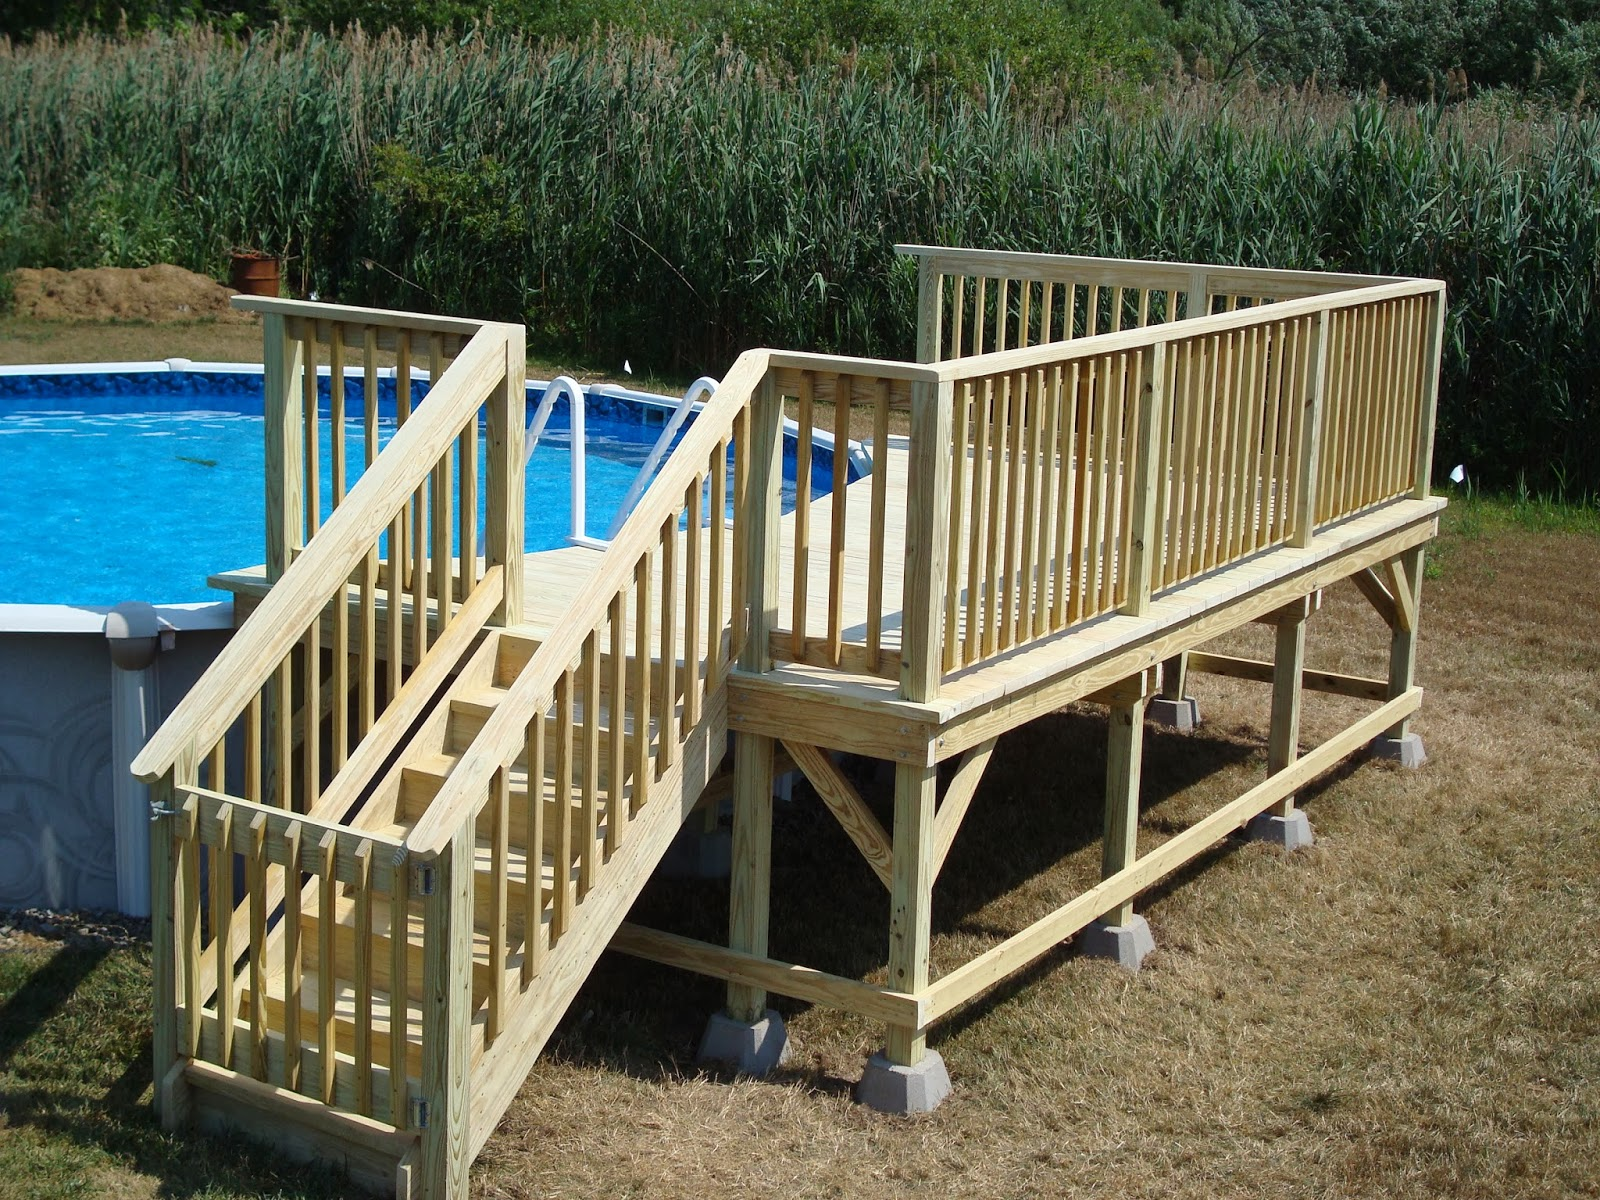 Currydecks - How to build an above ground pool ...